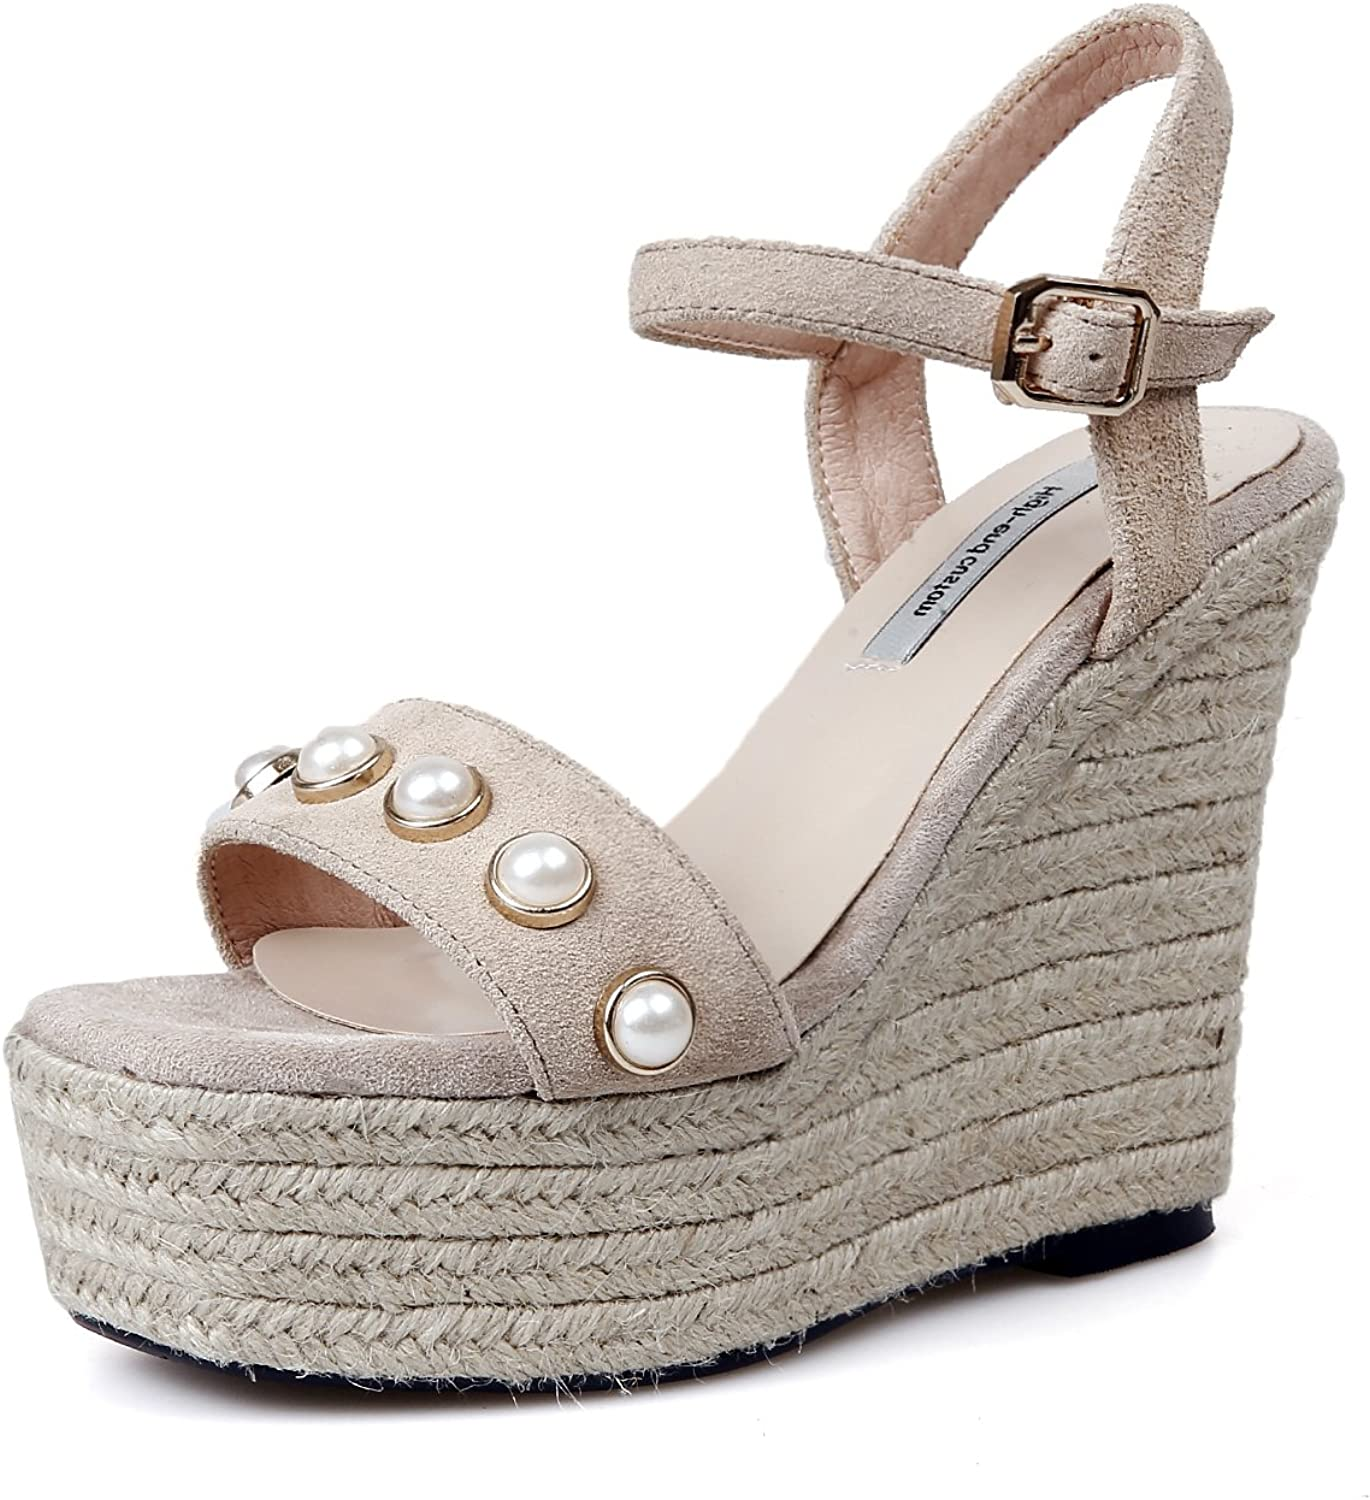 AnMengXinLing Platforms Sandals Women's Wedges Sandals with Pearls High Platform Open Toe Ankle Strap shoes